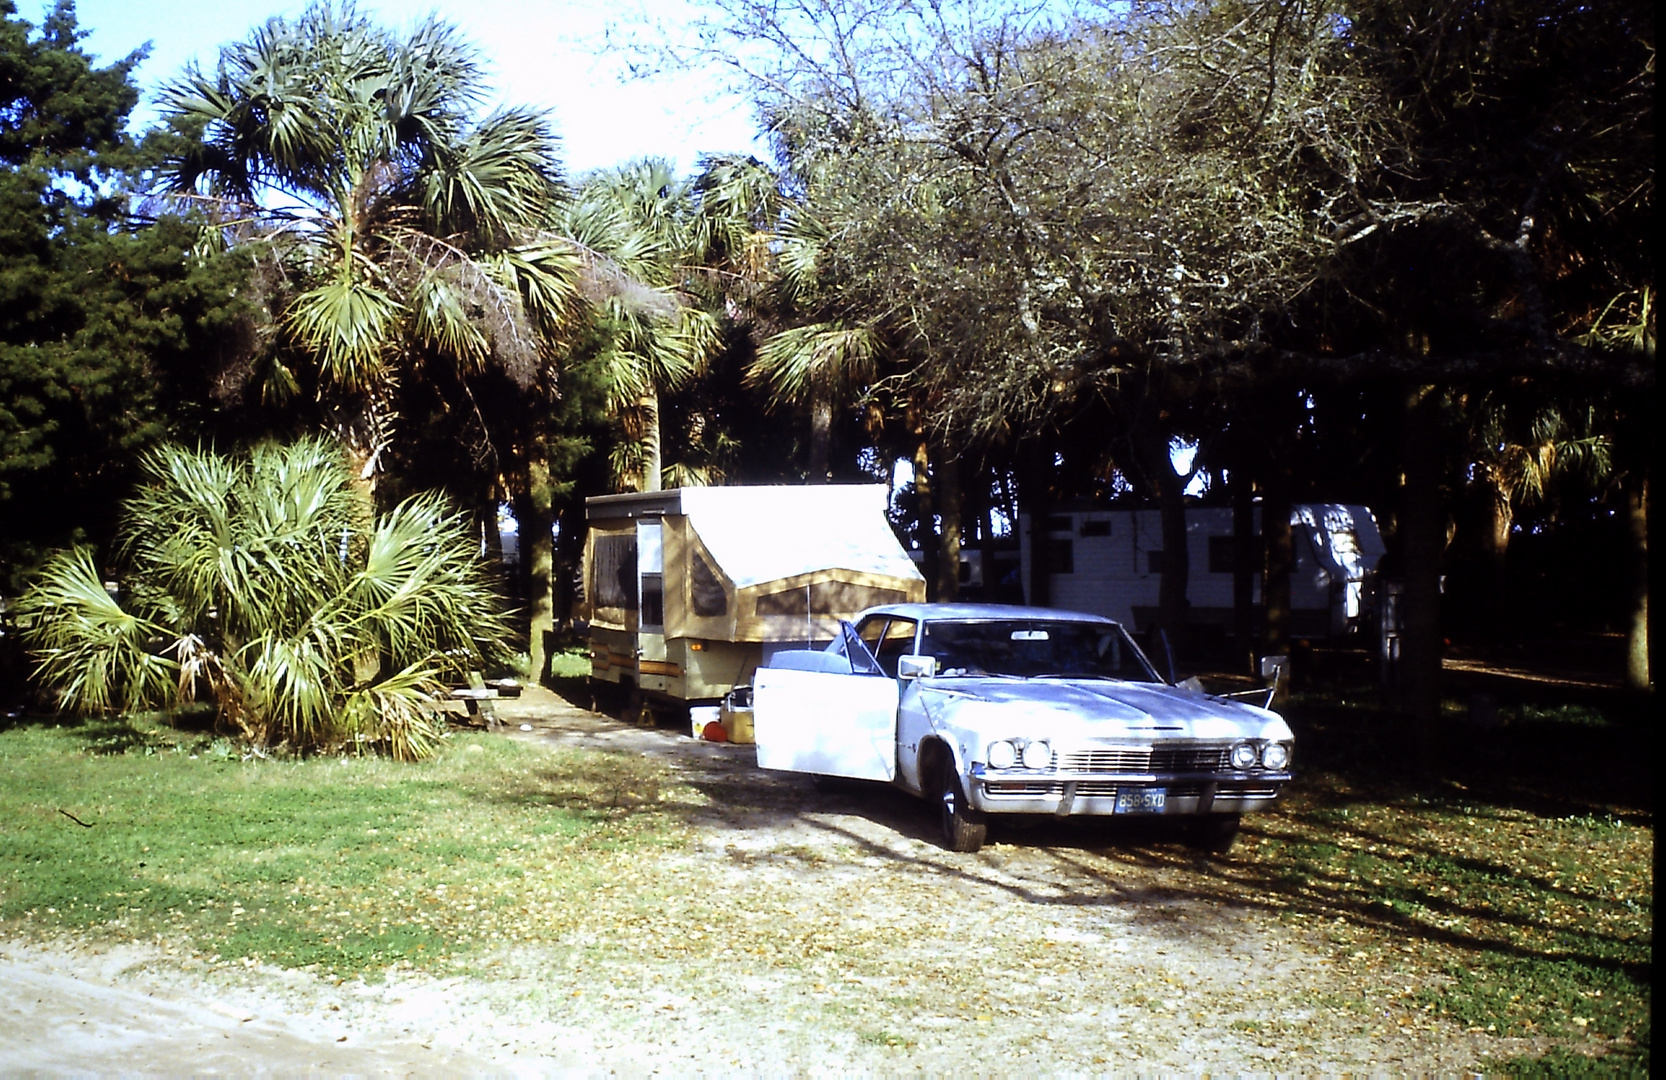 Campground in Florida